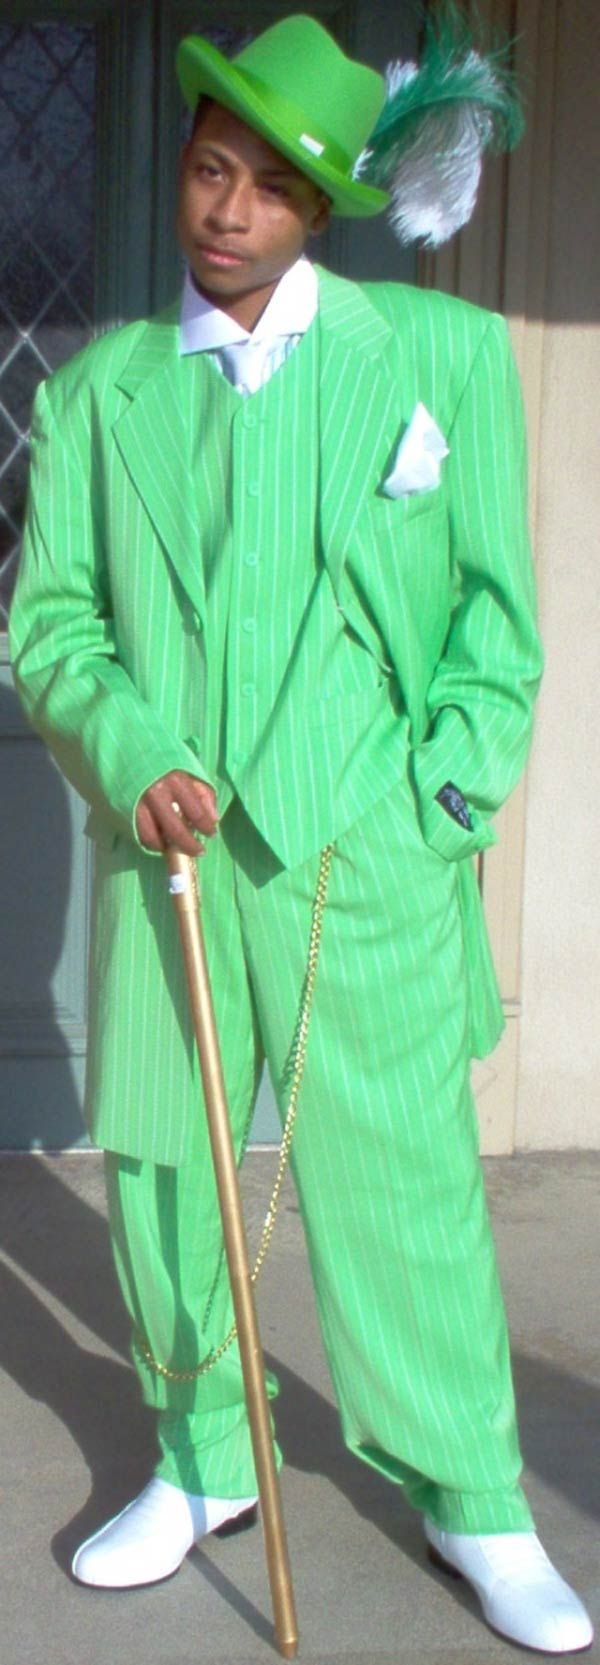 Green Suits Looking Mean In Green Best wedding suits